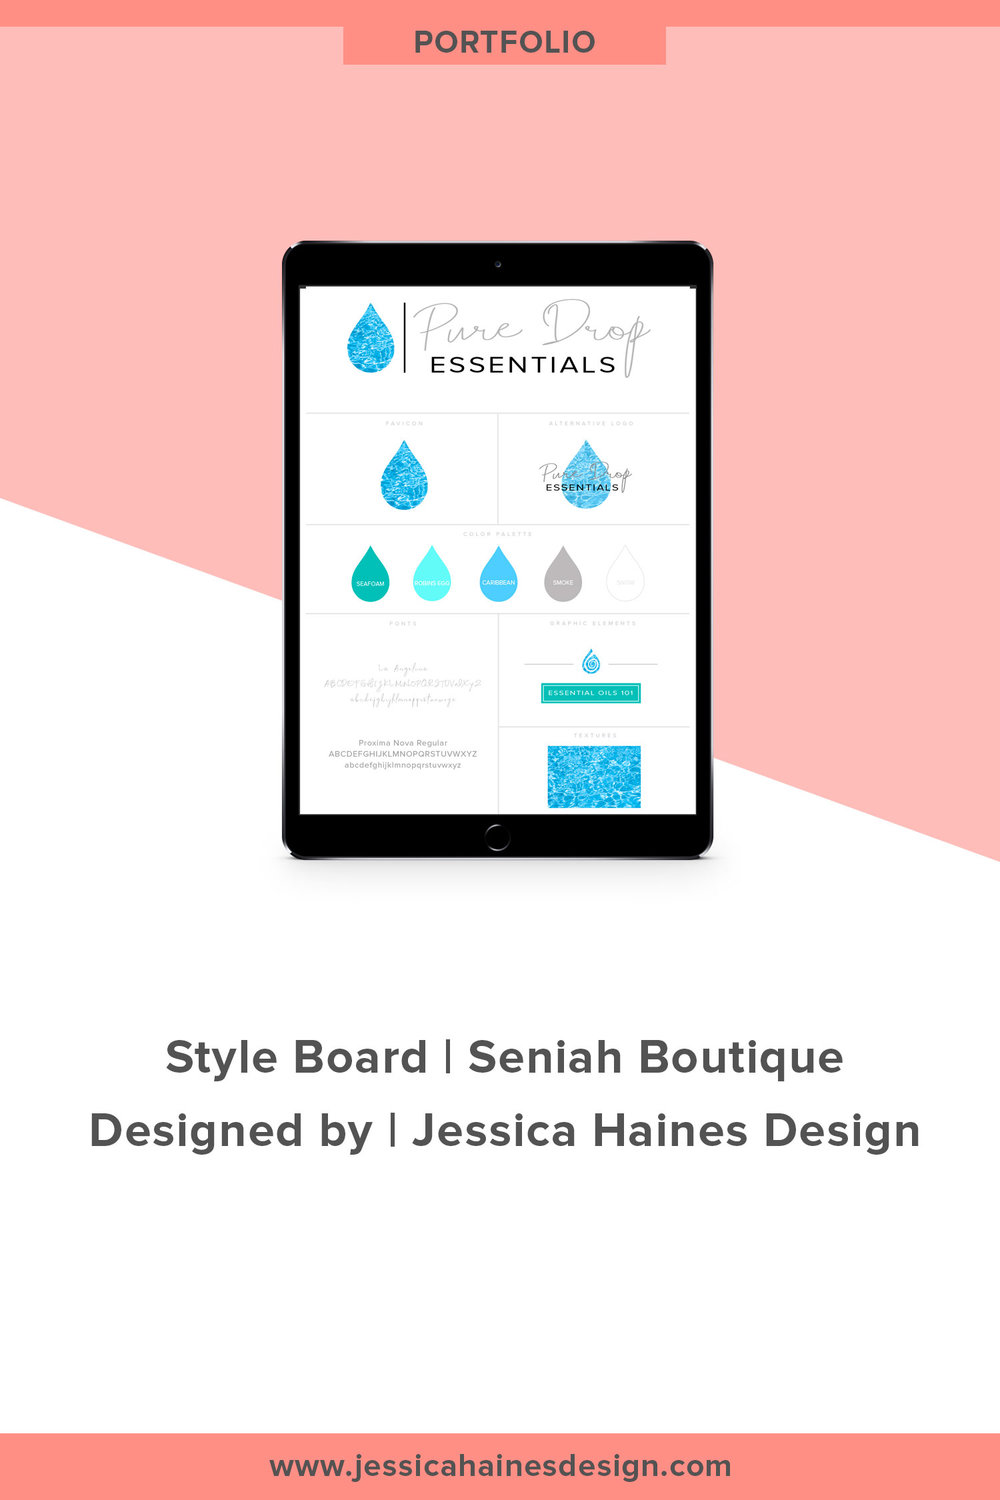 Pure Drop Essentials branding style board. This is the style board for an essential oils company. Want to take your brand to the next level with a custom logo and brand style board? Click through to find out how I can help you with a brand refresh      www.jessicahainesdesign.com